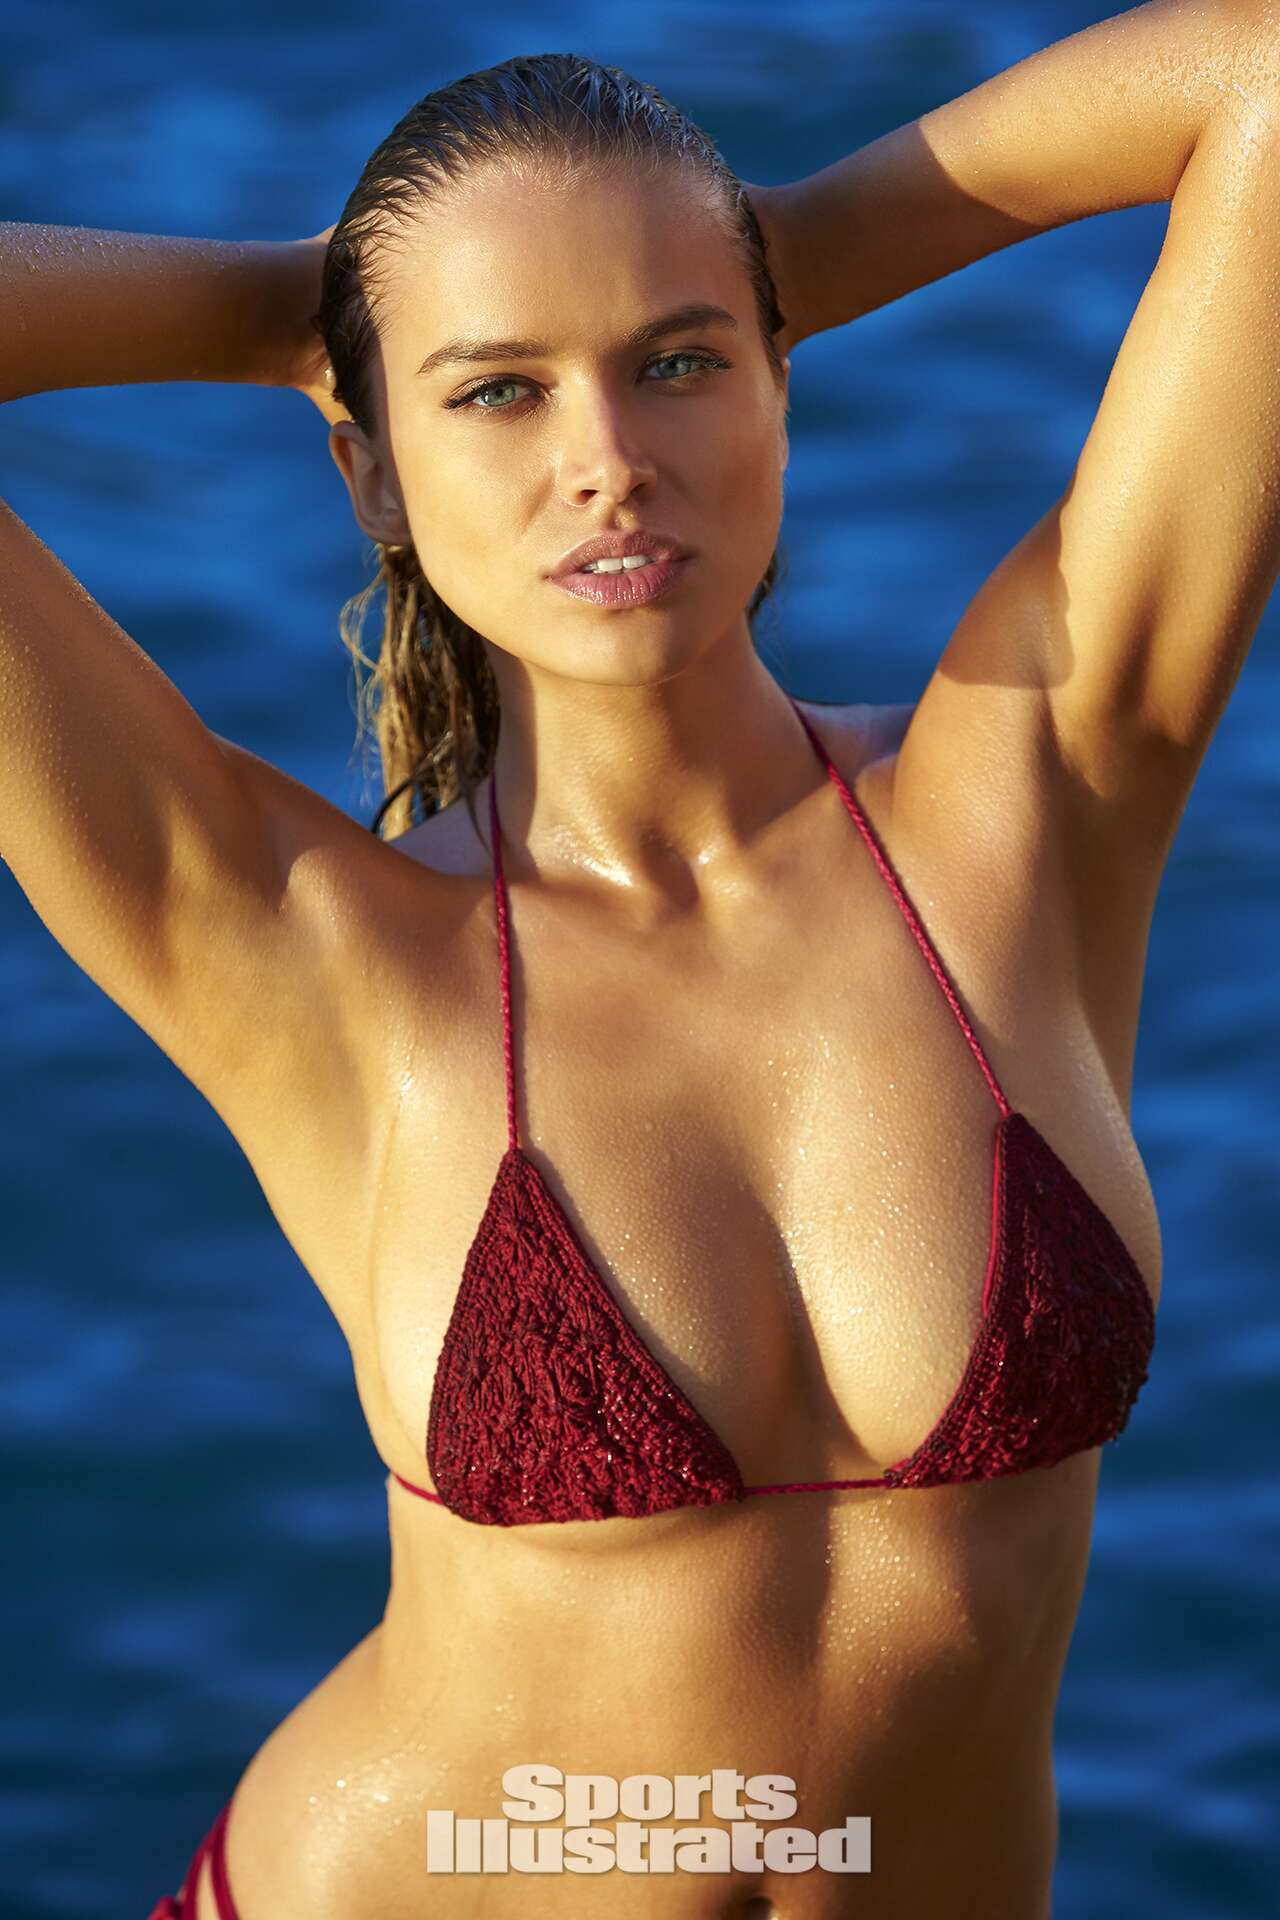 Tanya Mityushina was photographed by Ben Watts in Malta. Swimsuit by R O V E S W I M.